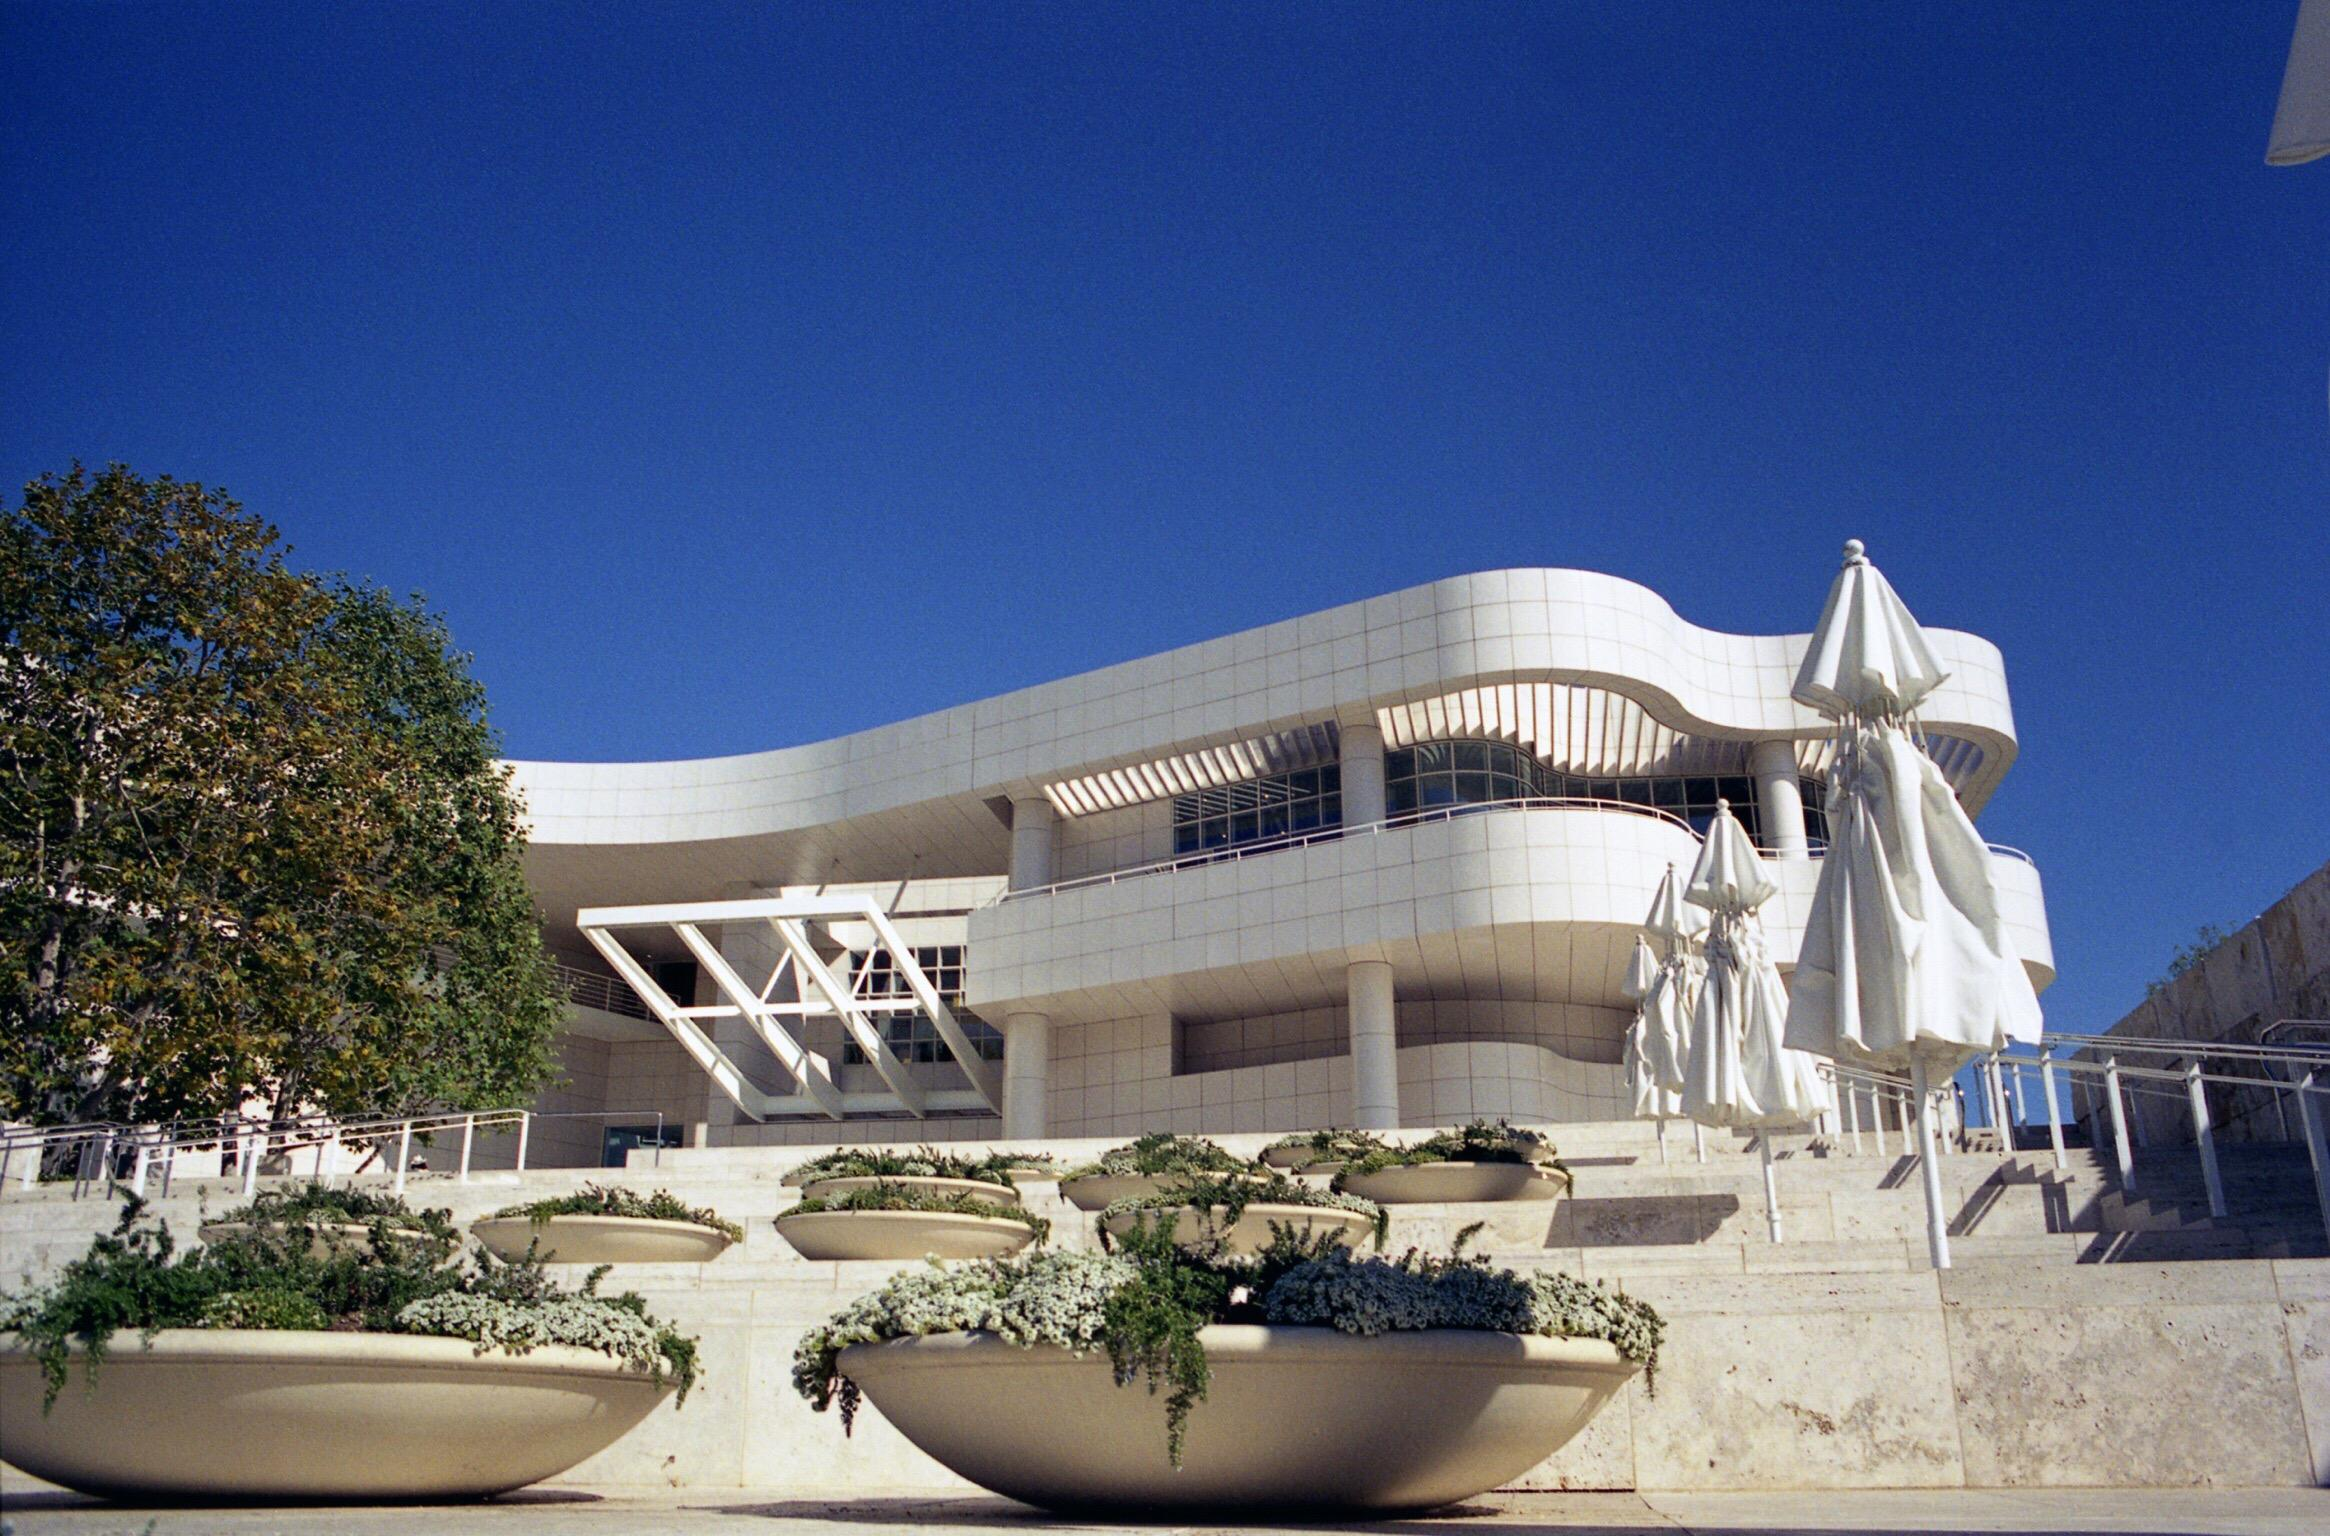 SoCal Museums Annual Free-for-All Day